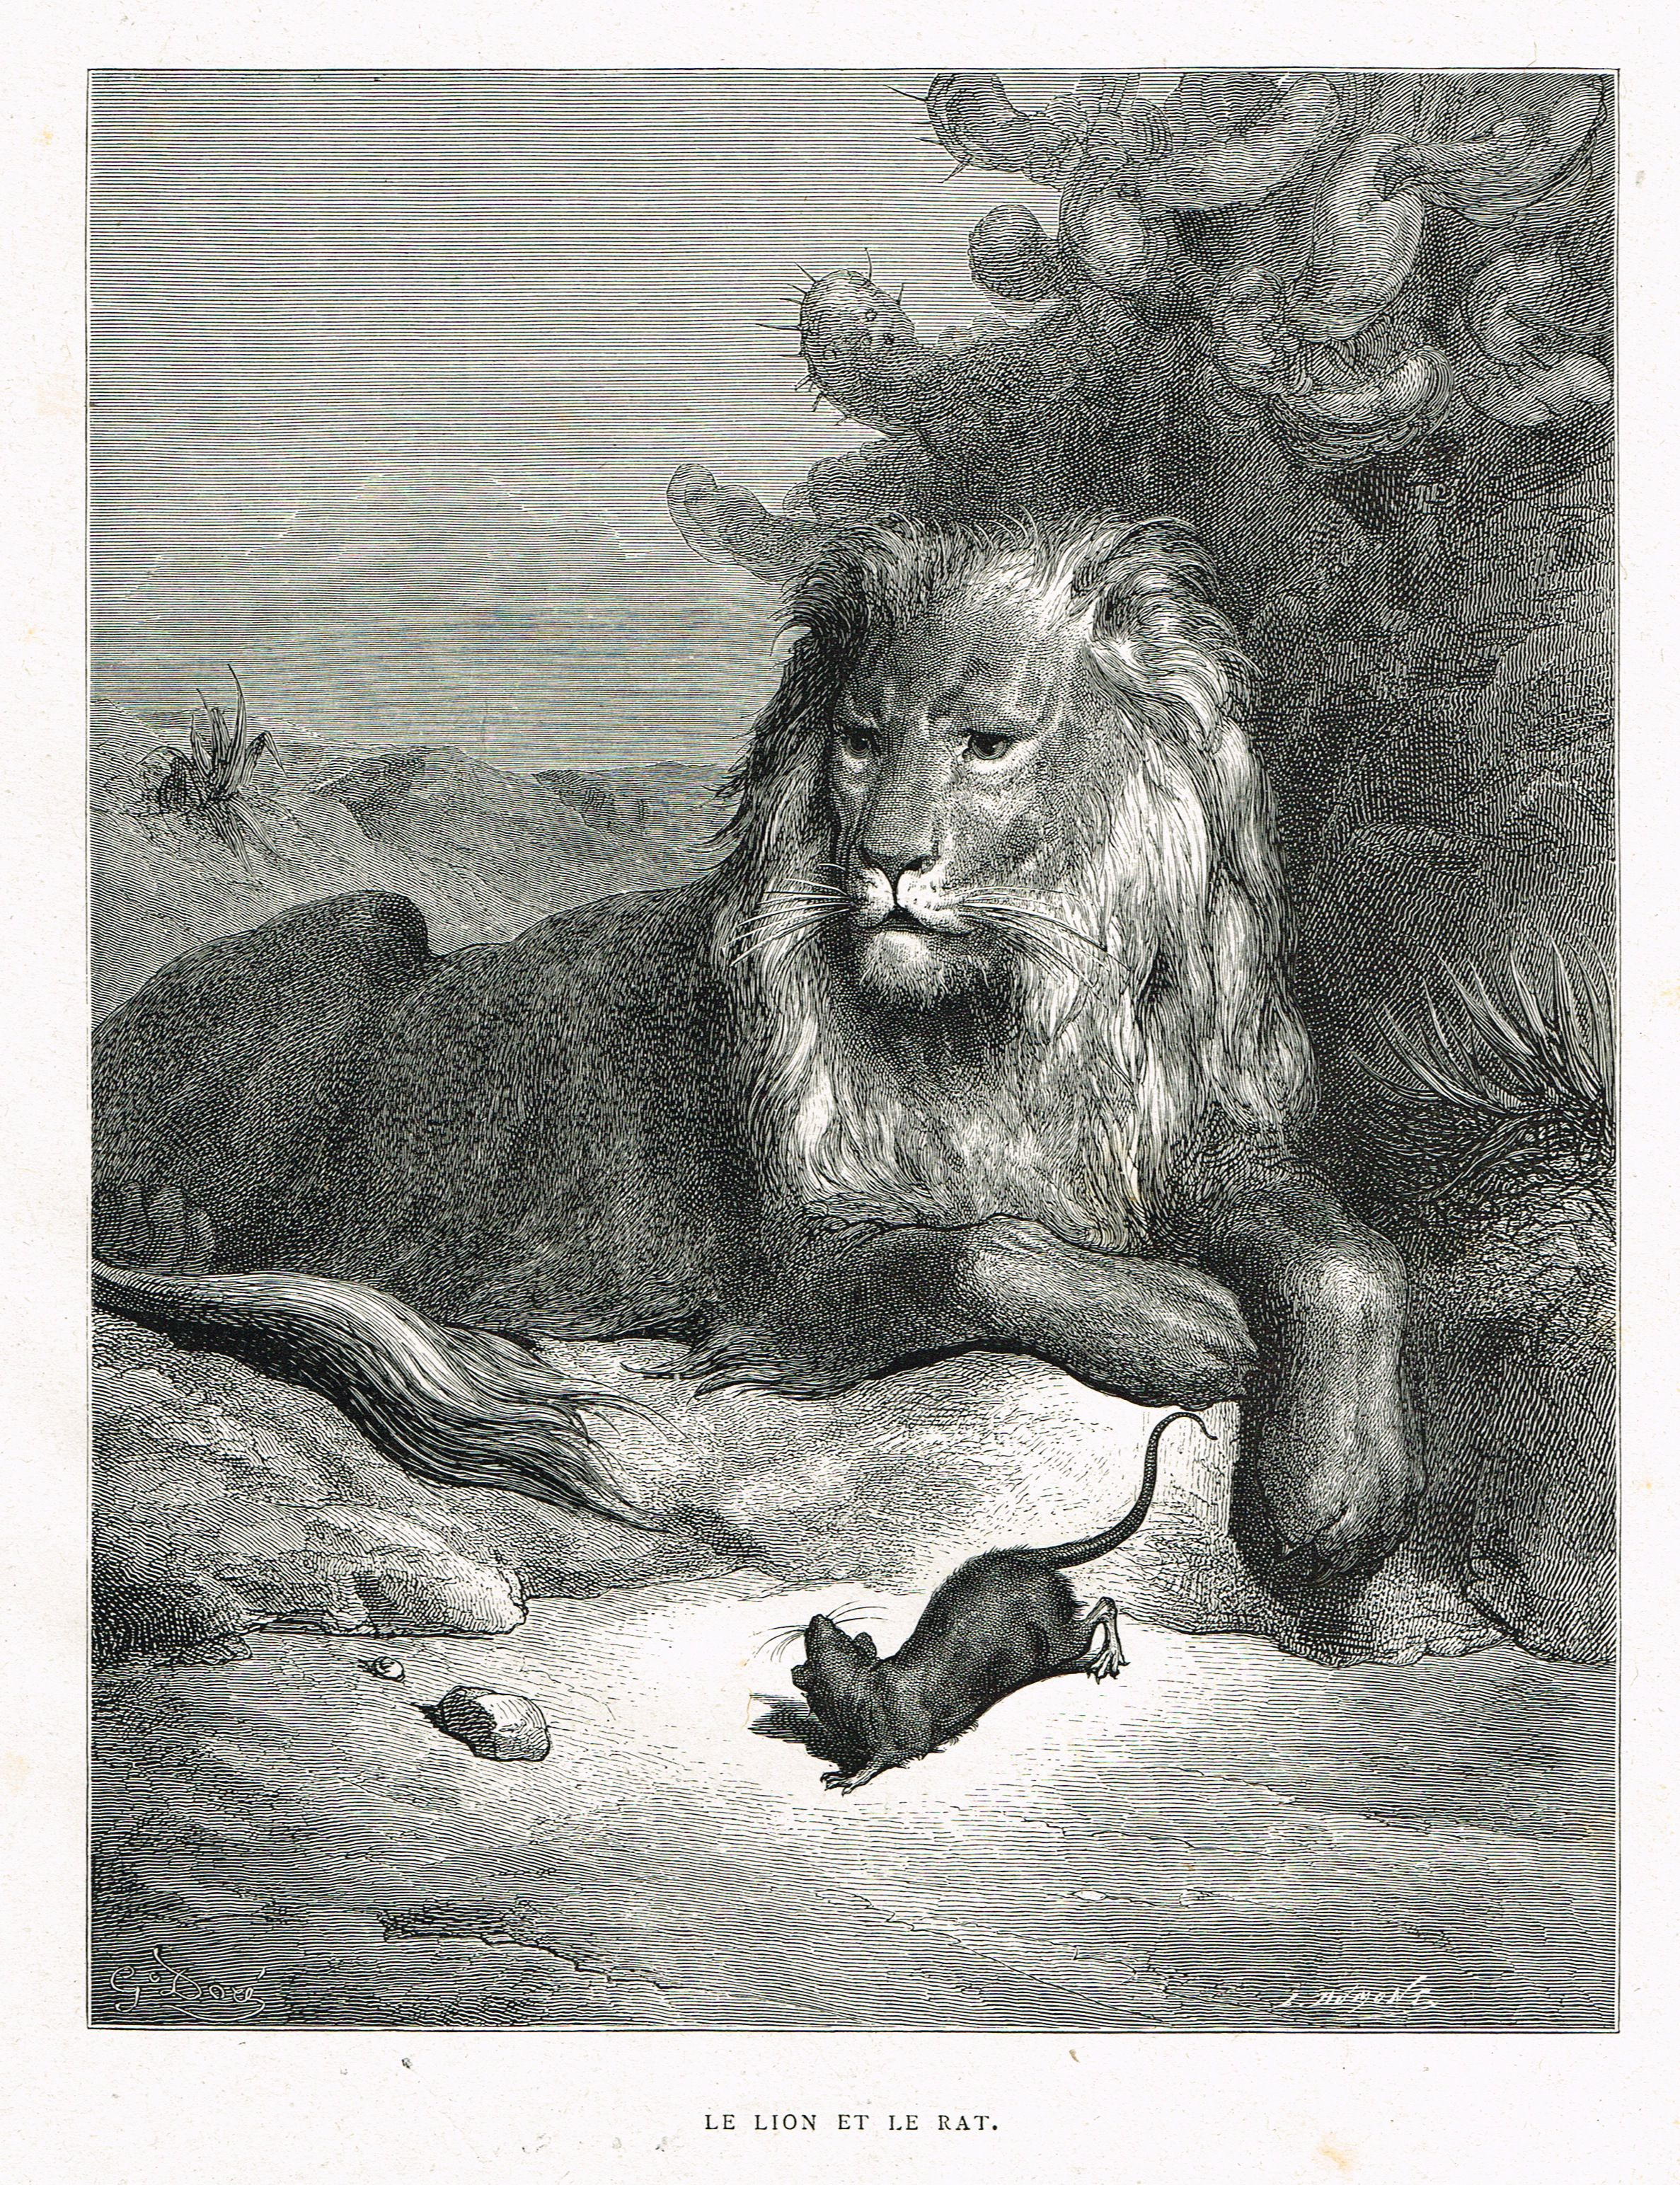 Le lion et le rat fable de jean de la fontaine illustr e - Dessin le lion et le rat ...